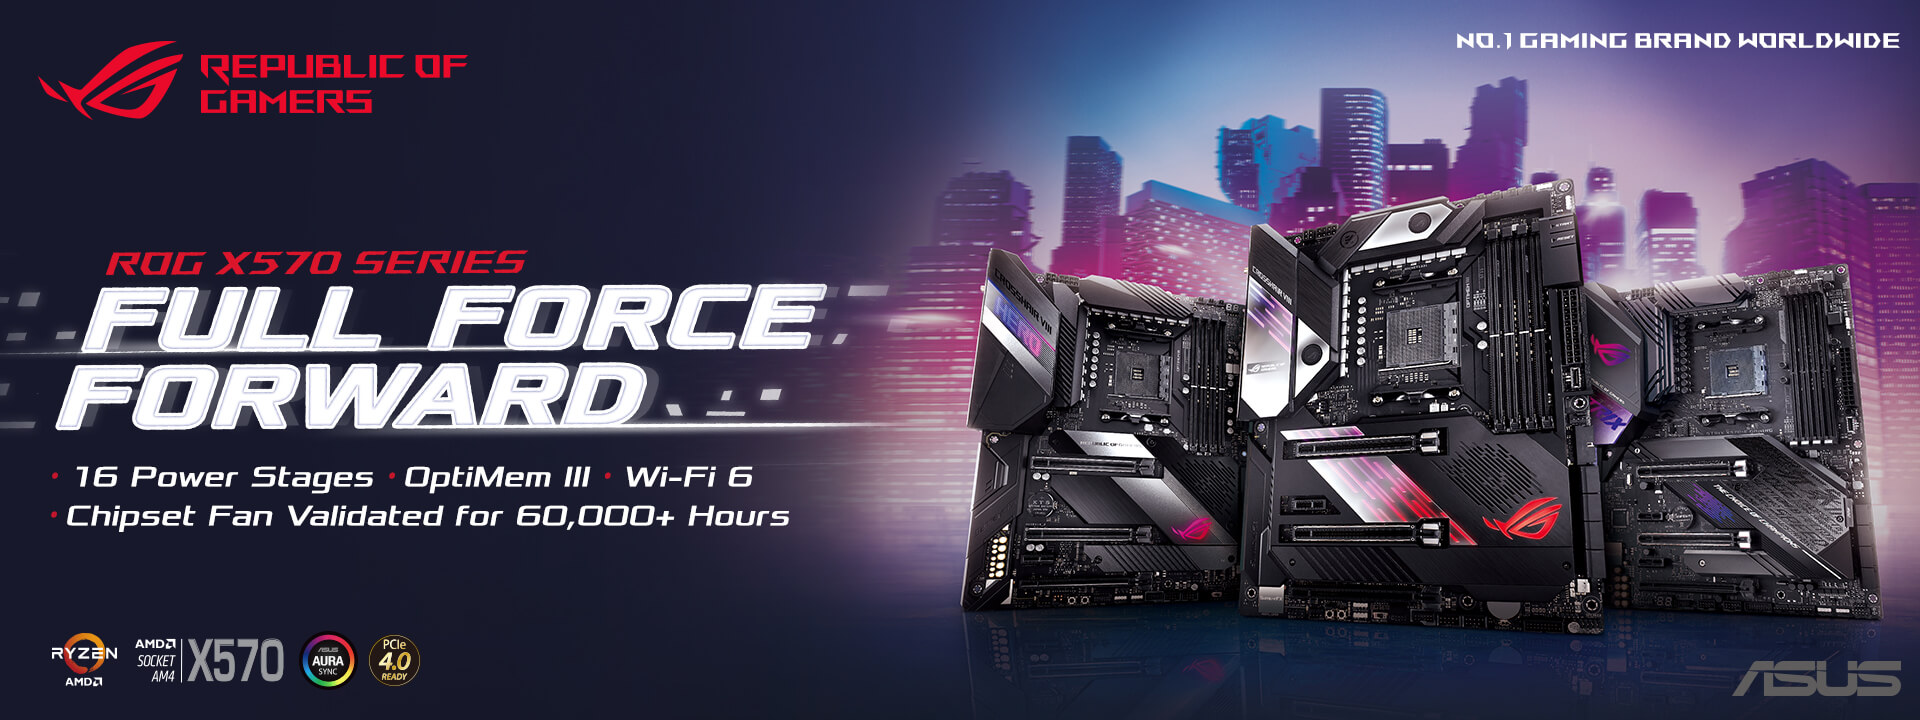 ASUS Rolls Out AMD AGESA 1.2.0.3 Patch C BETA BIOS Firmware For X570 ROG Motherboards, Improves Ryzen 5000G APU Compatibility